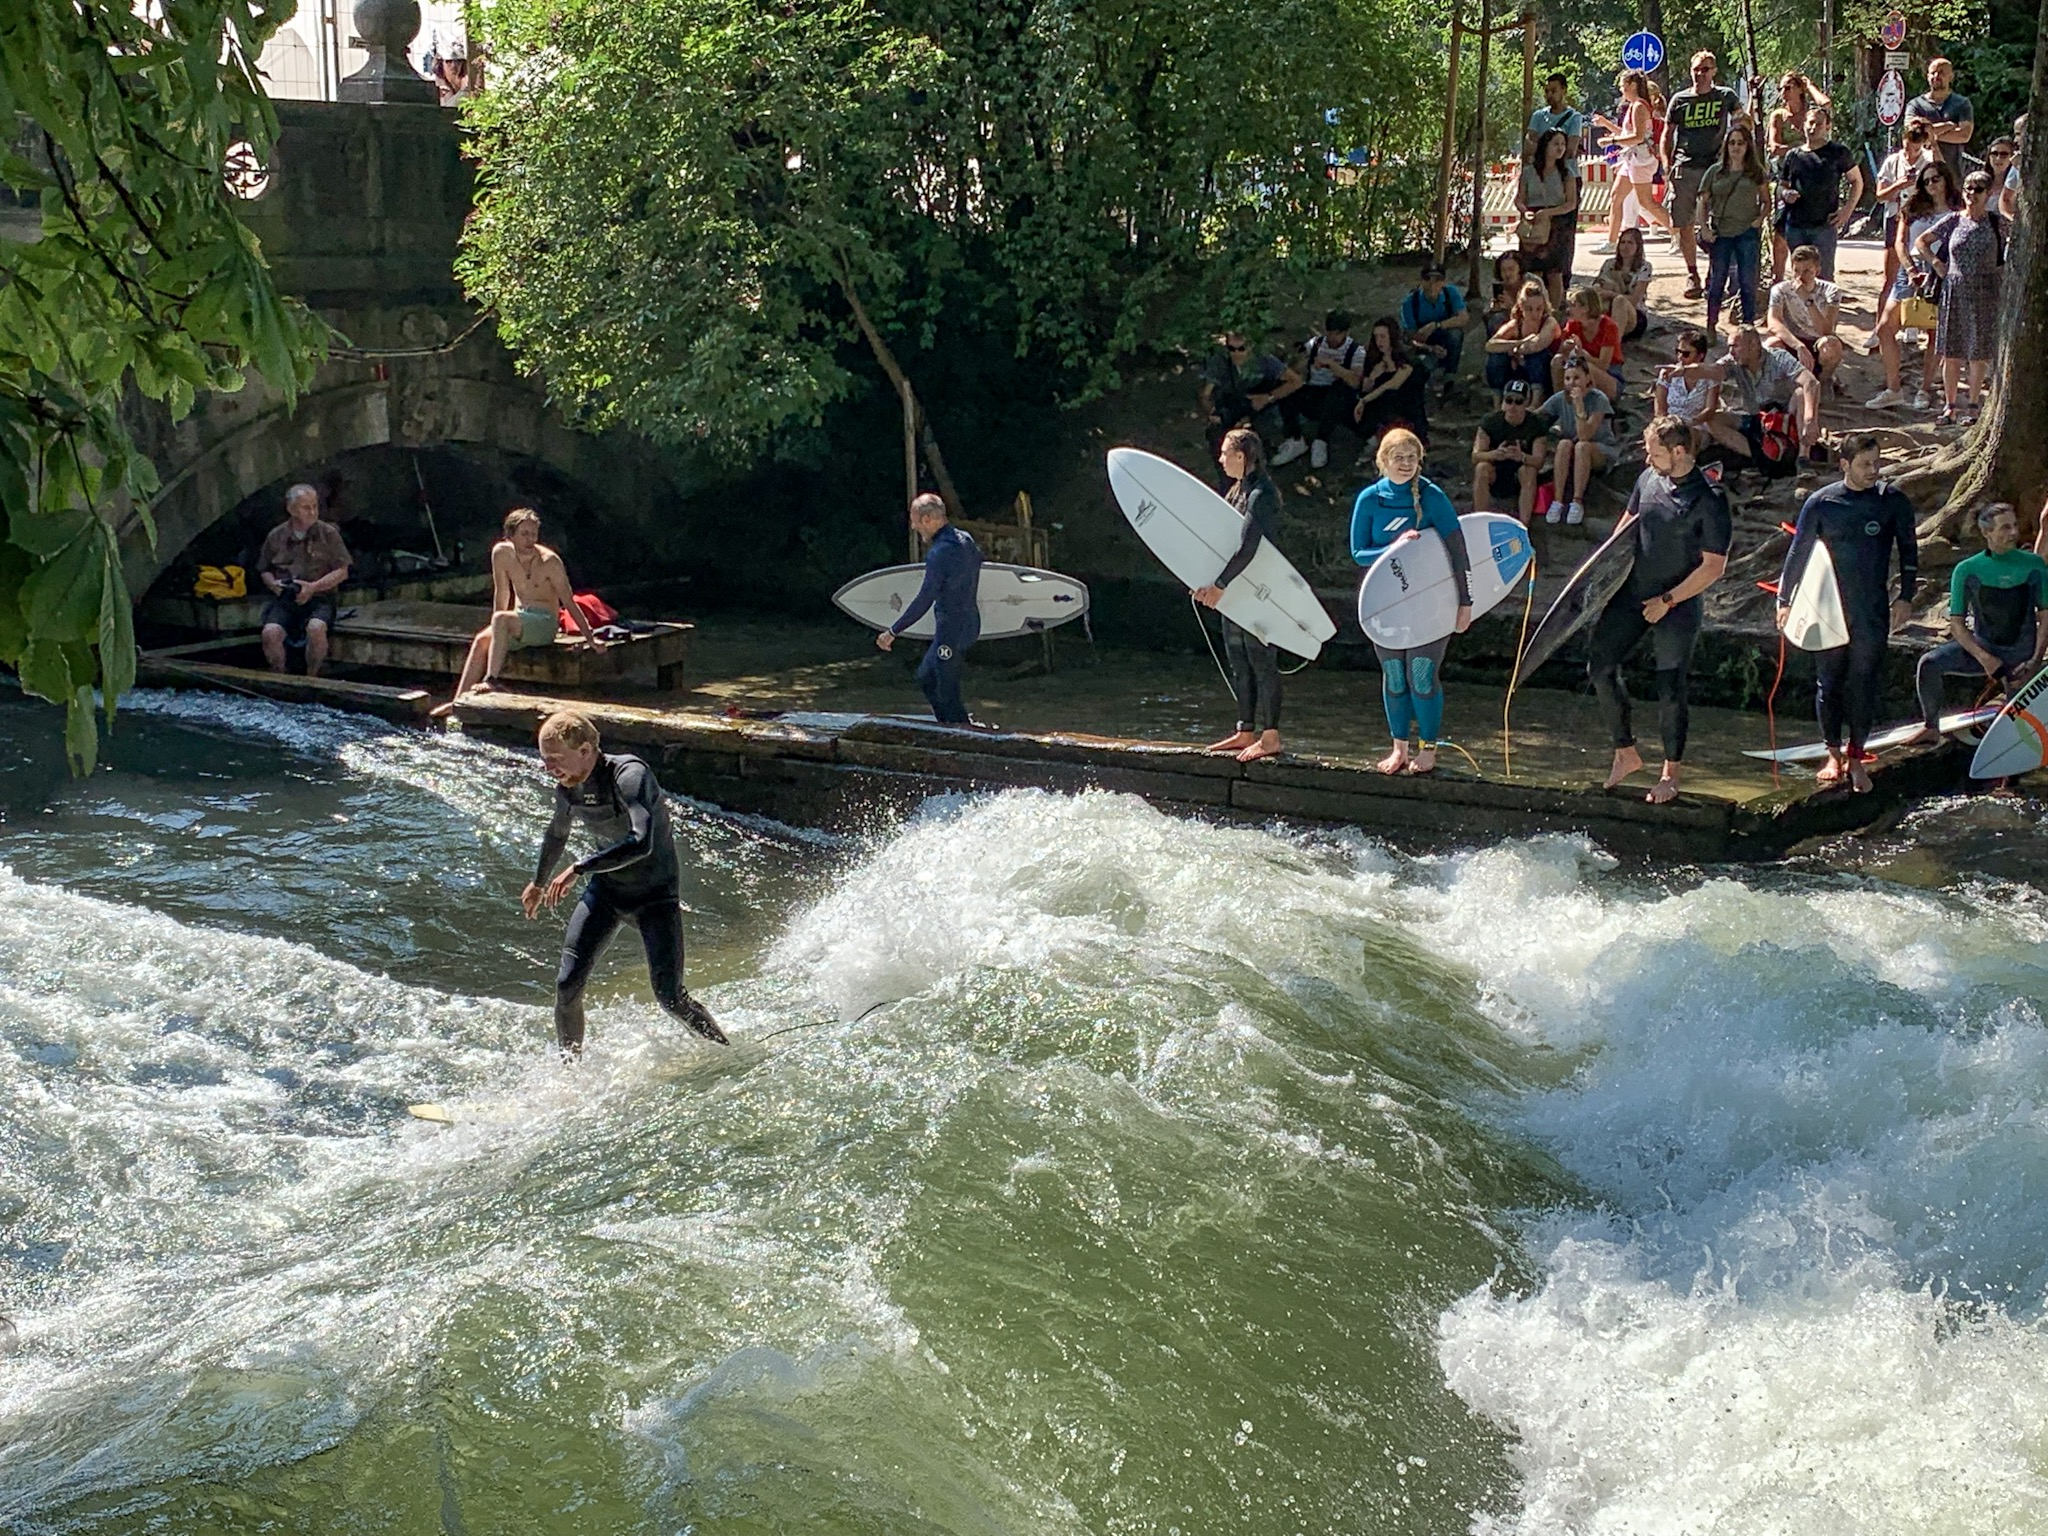 21 Reasons to love Munich: Eisbach surfers' delight